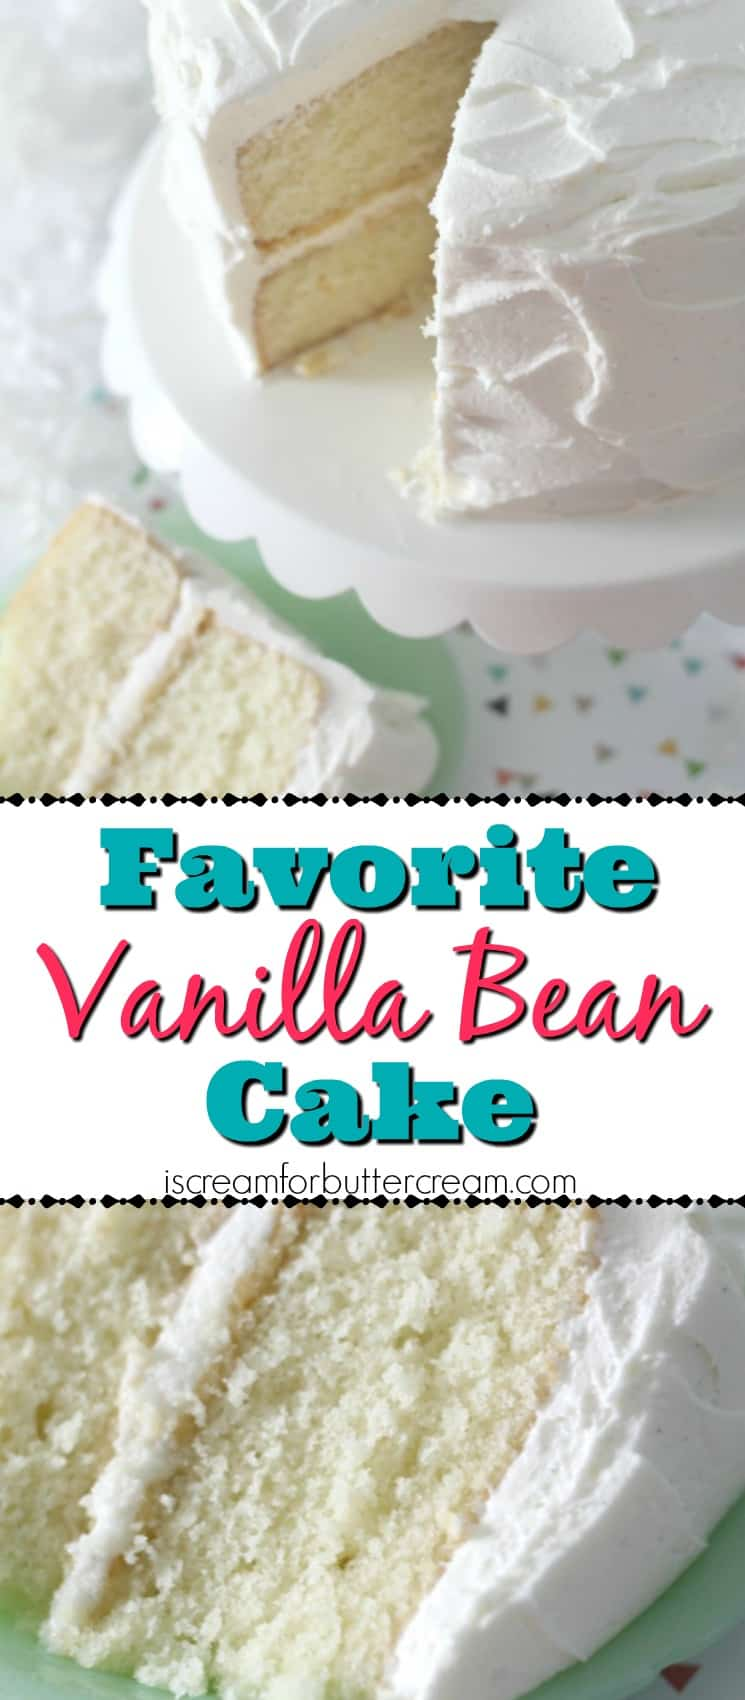 Favorite Vanilla Bean Cake Pinterest Graphic